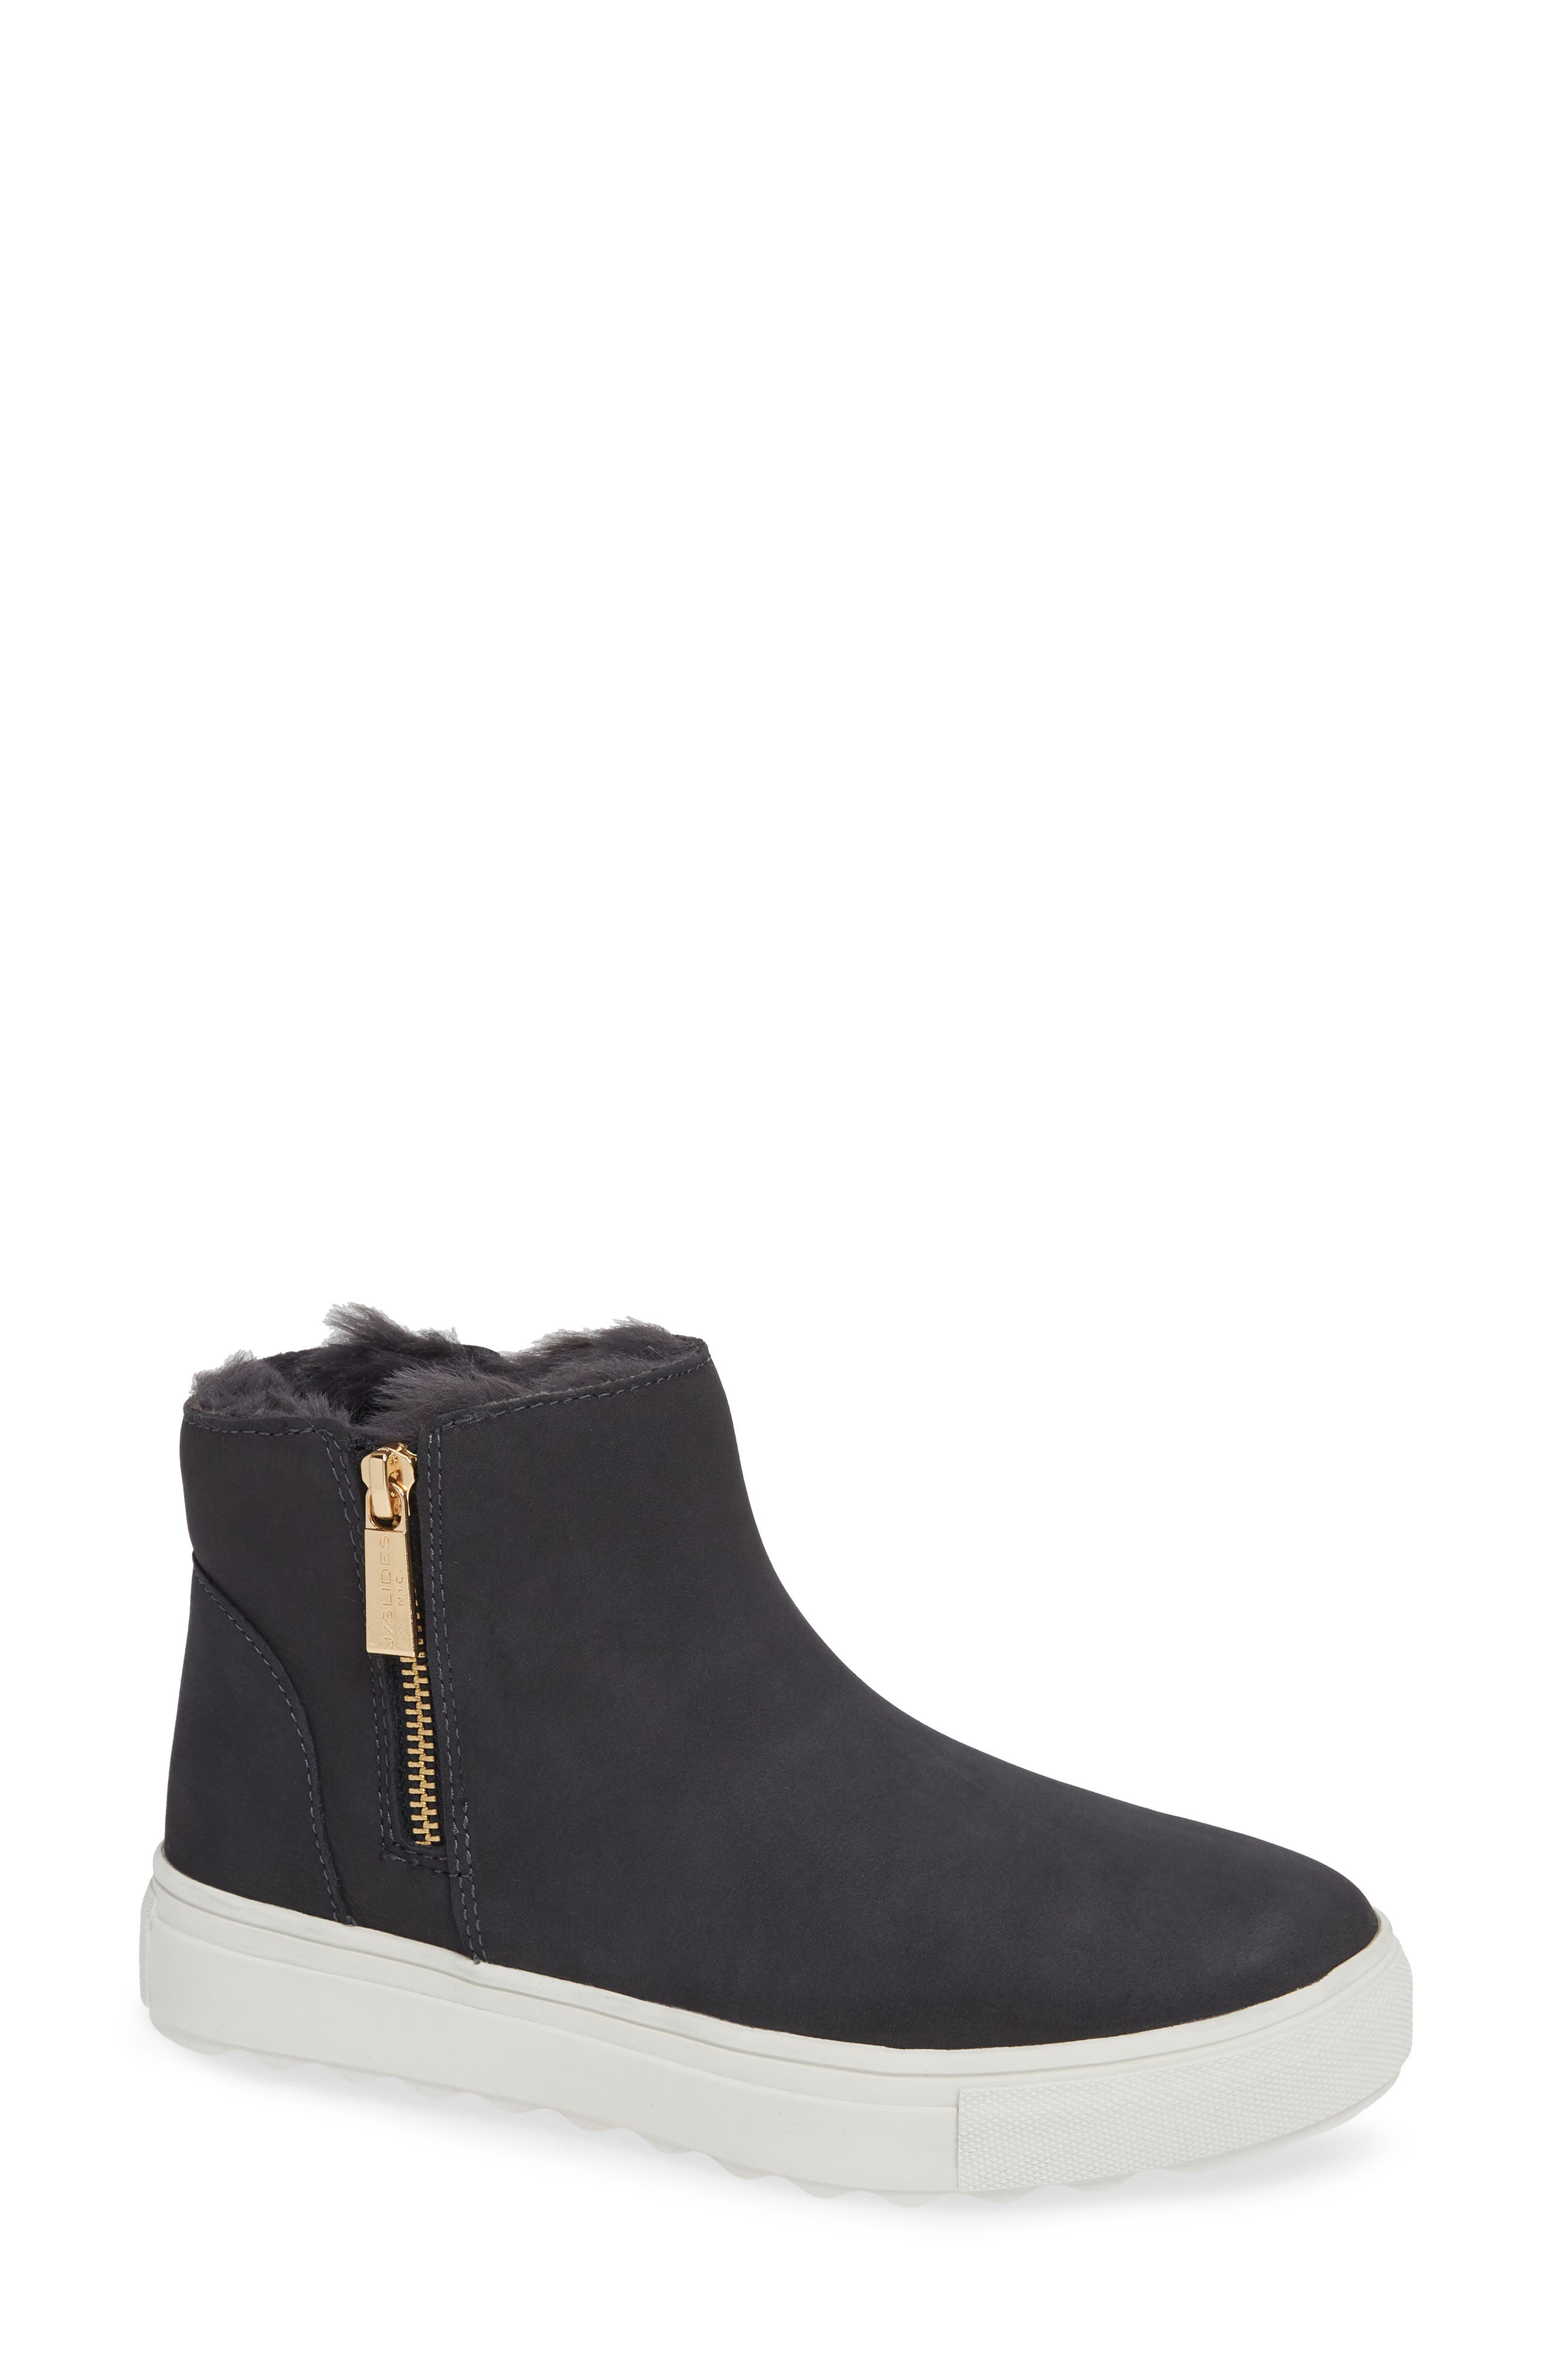 JSLIDES Poppy Waterproof Bootie in Navy Nubuck